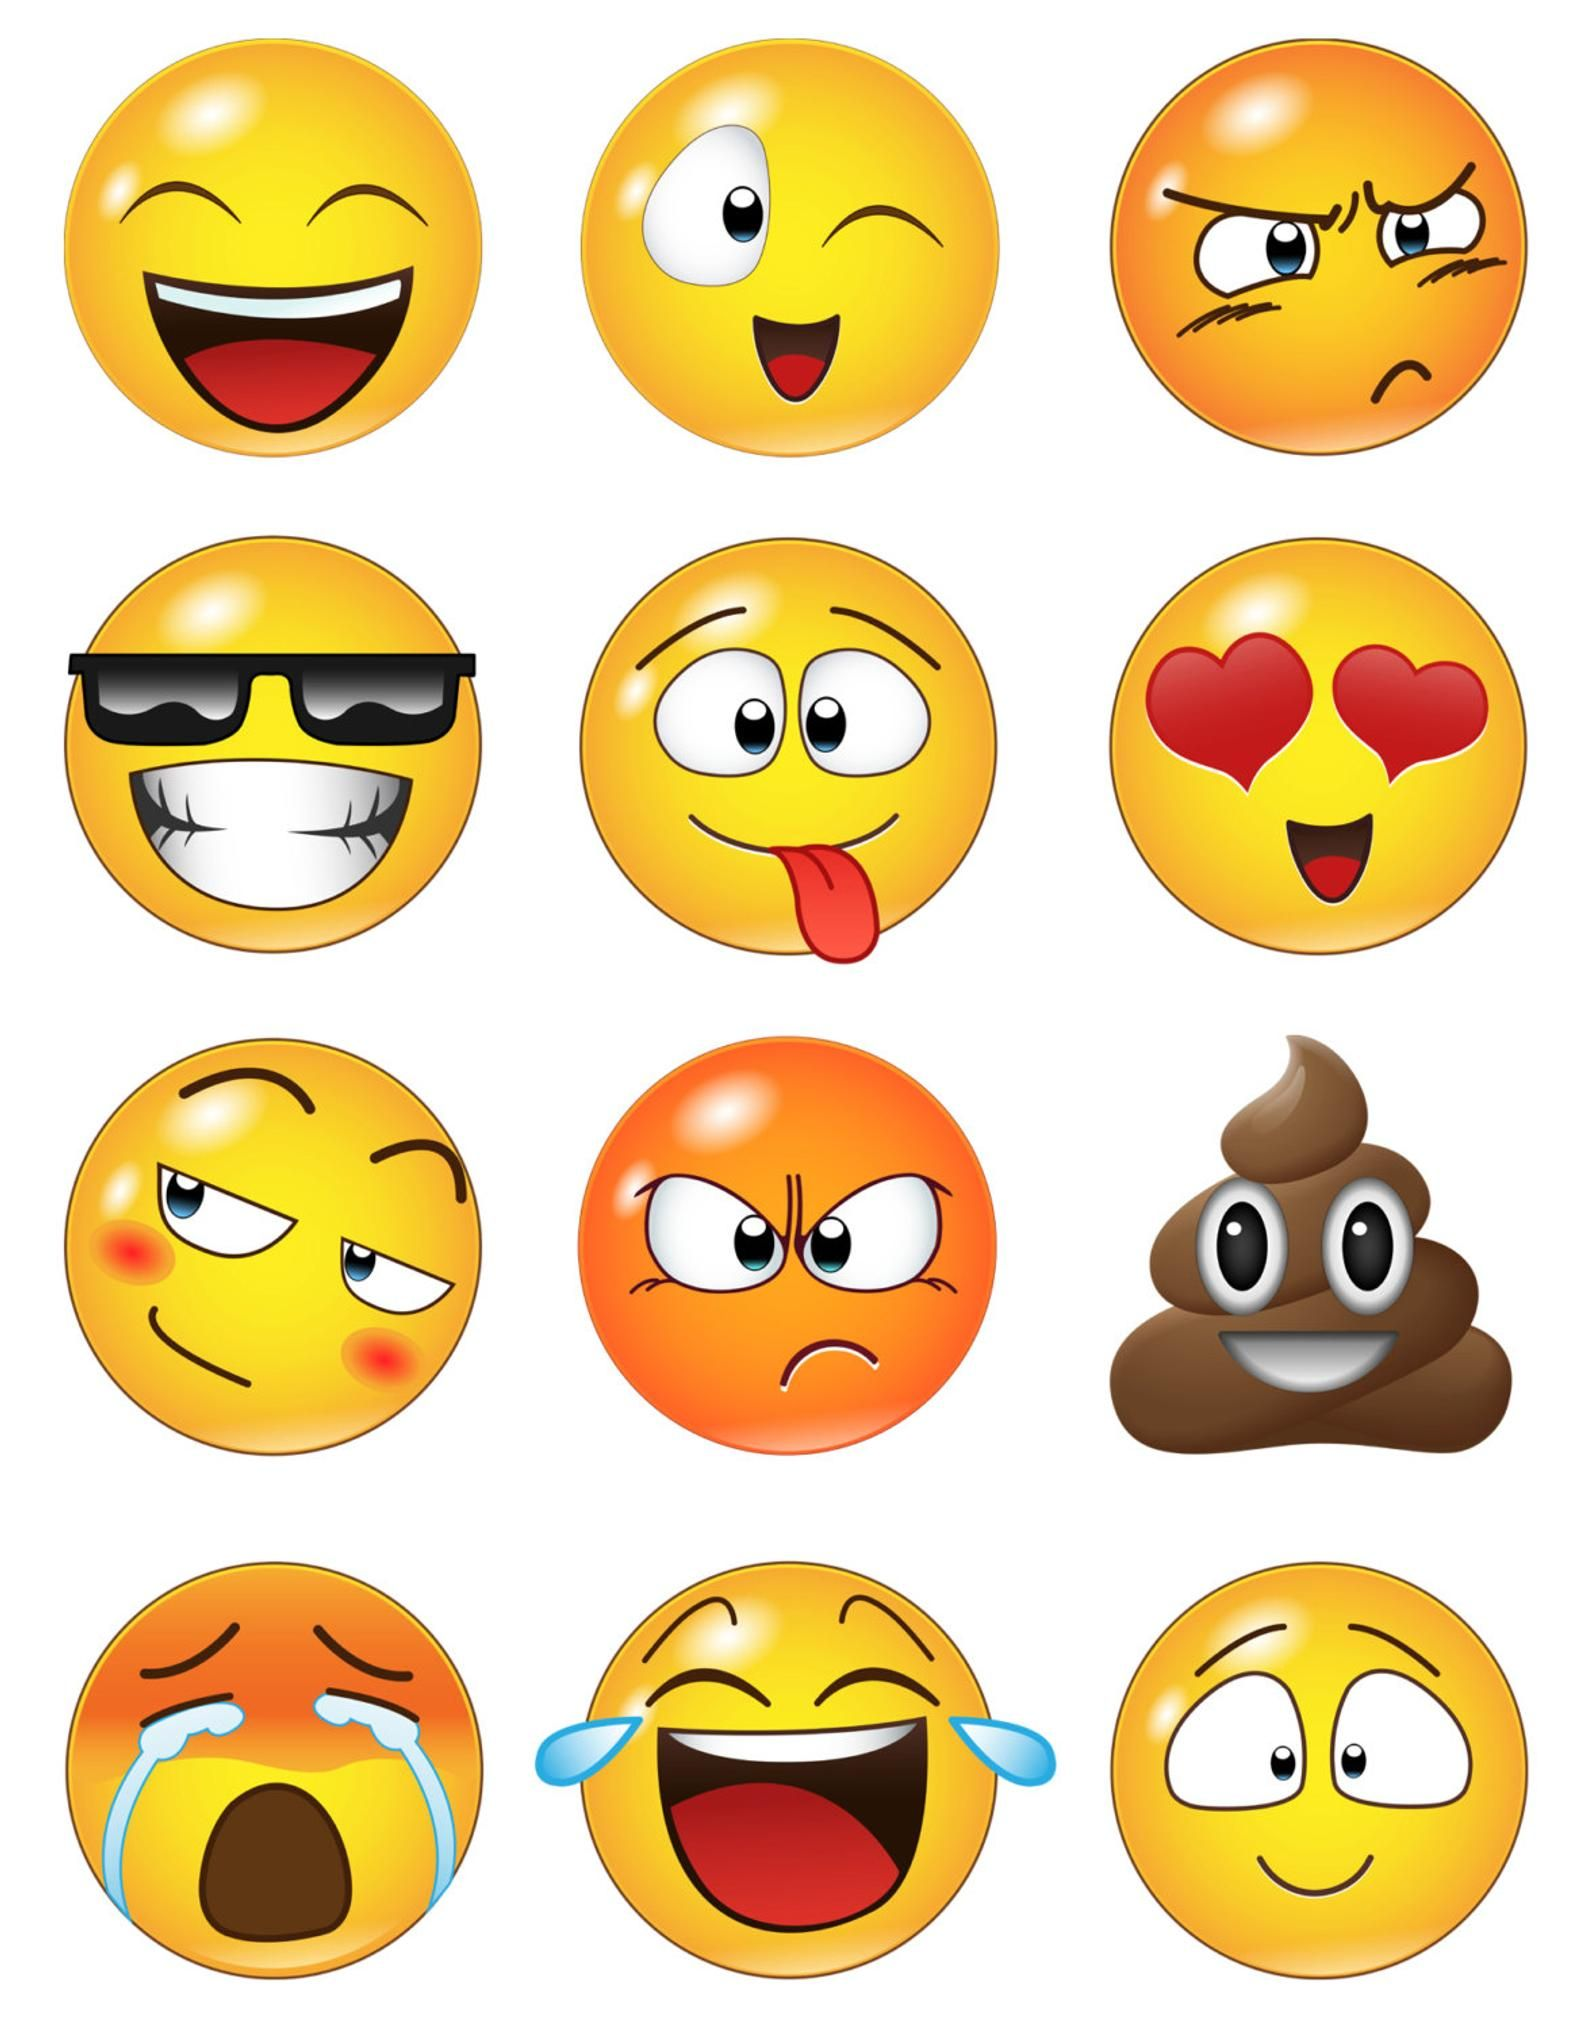 12 Large Emoji Faces Wall Graphic Decal Sticker #6052